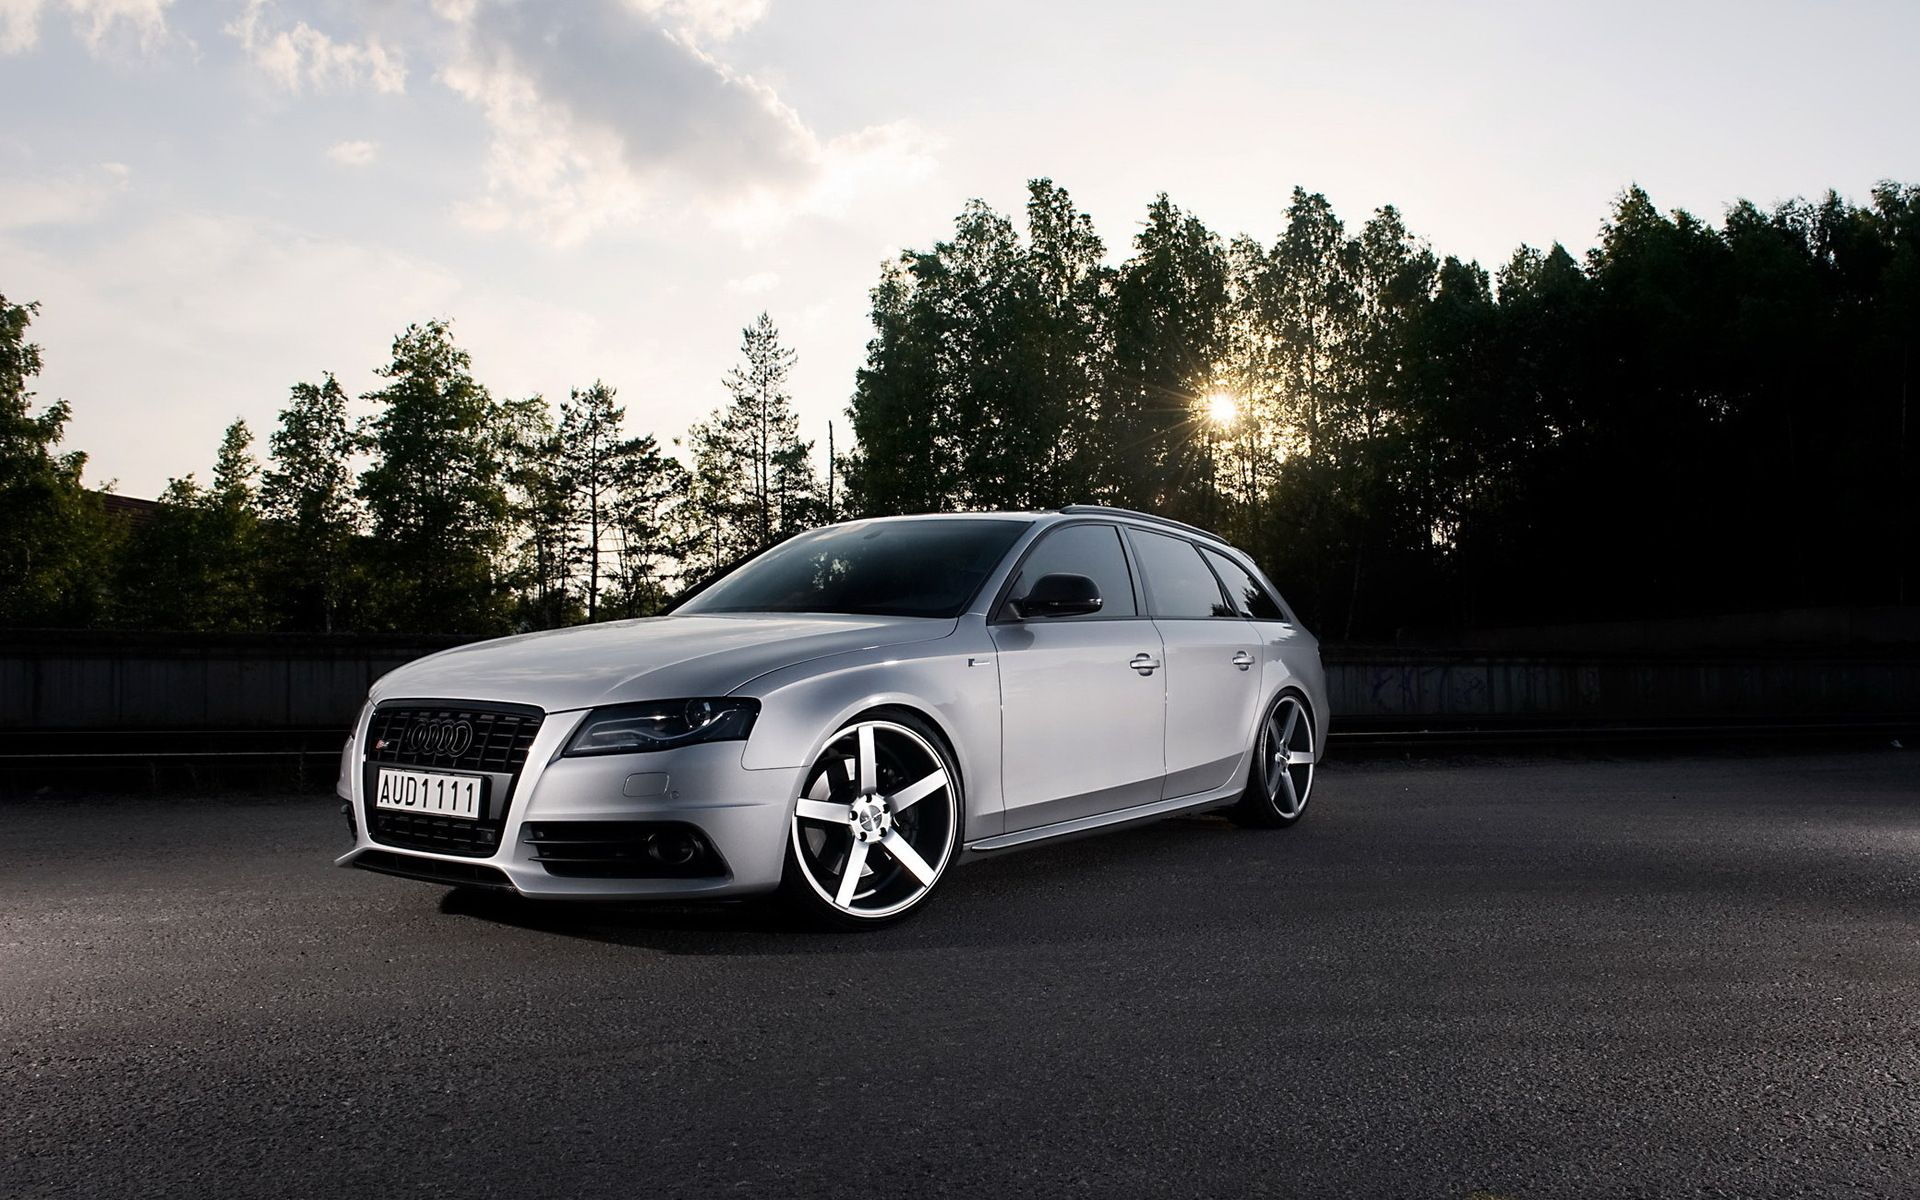 Audi S4 Wallpapers 01